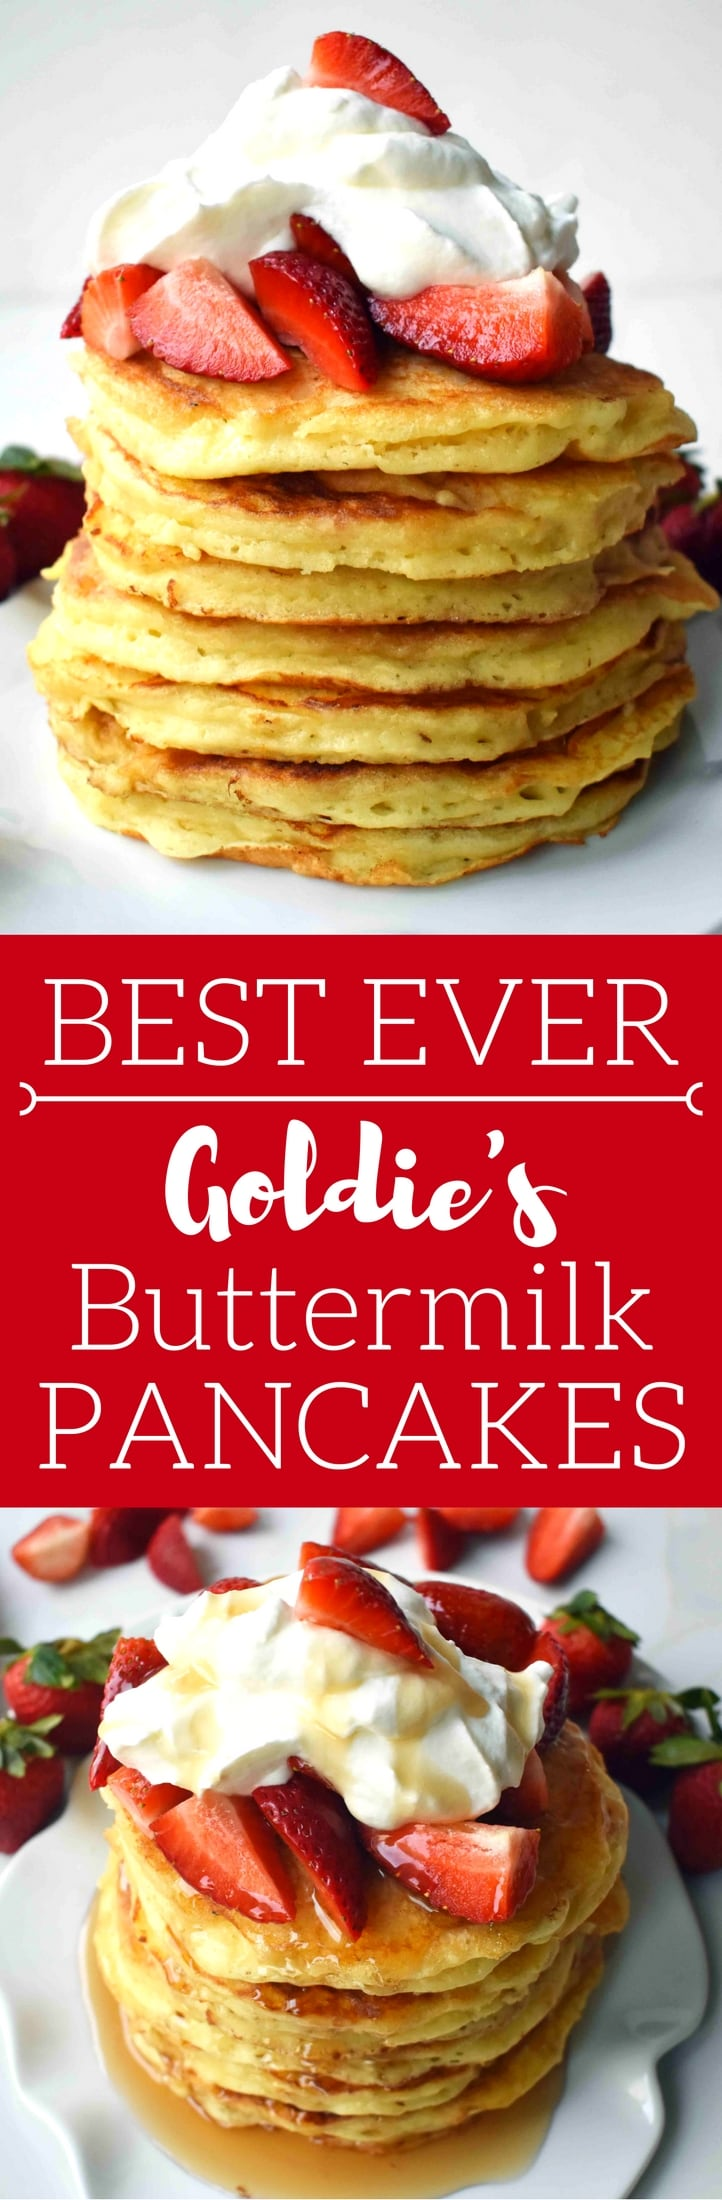 Goldie's Best Buttermilk Pancakes. Tender, soft, fluffy and buttery buttermilk pancakes. www.modernhoney.com